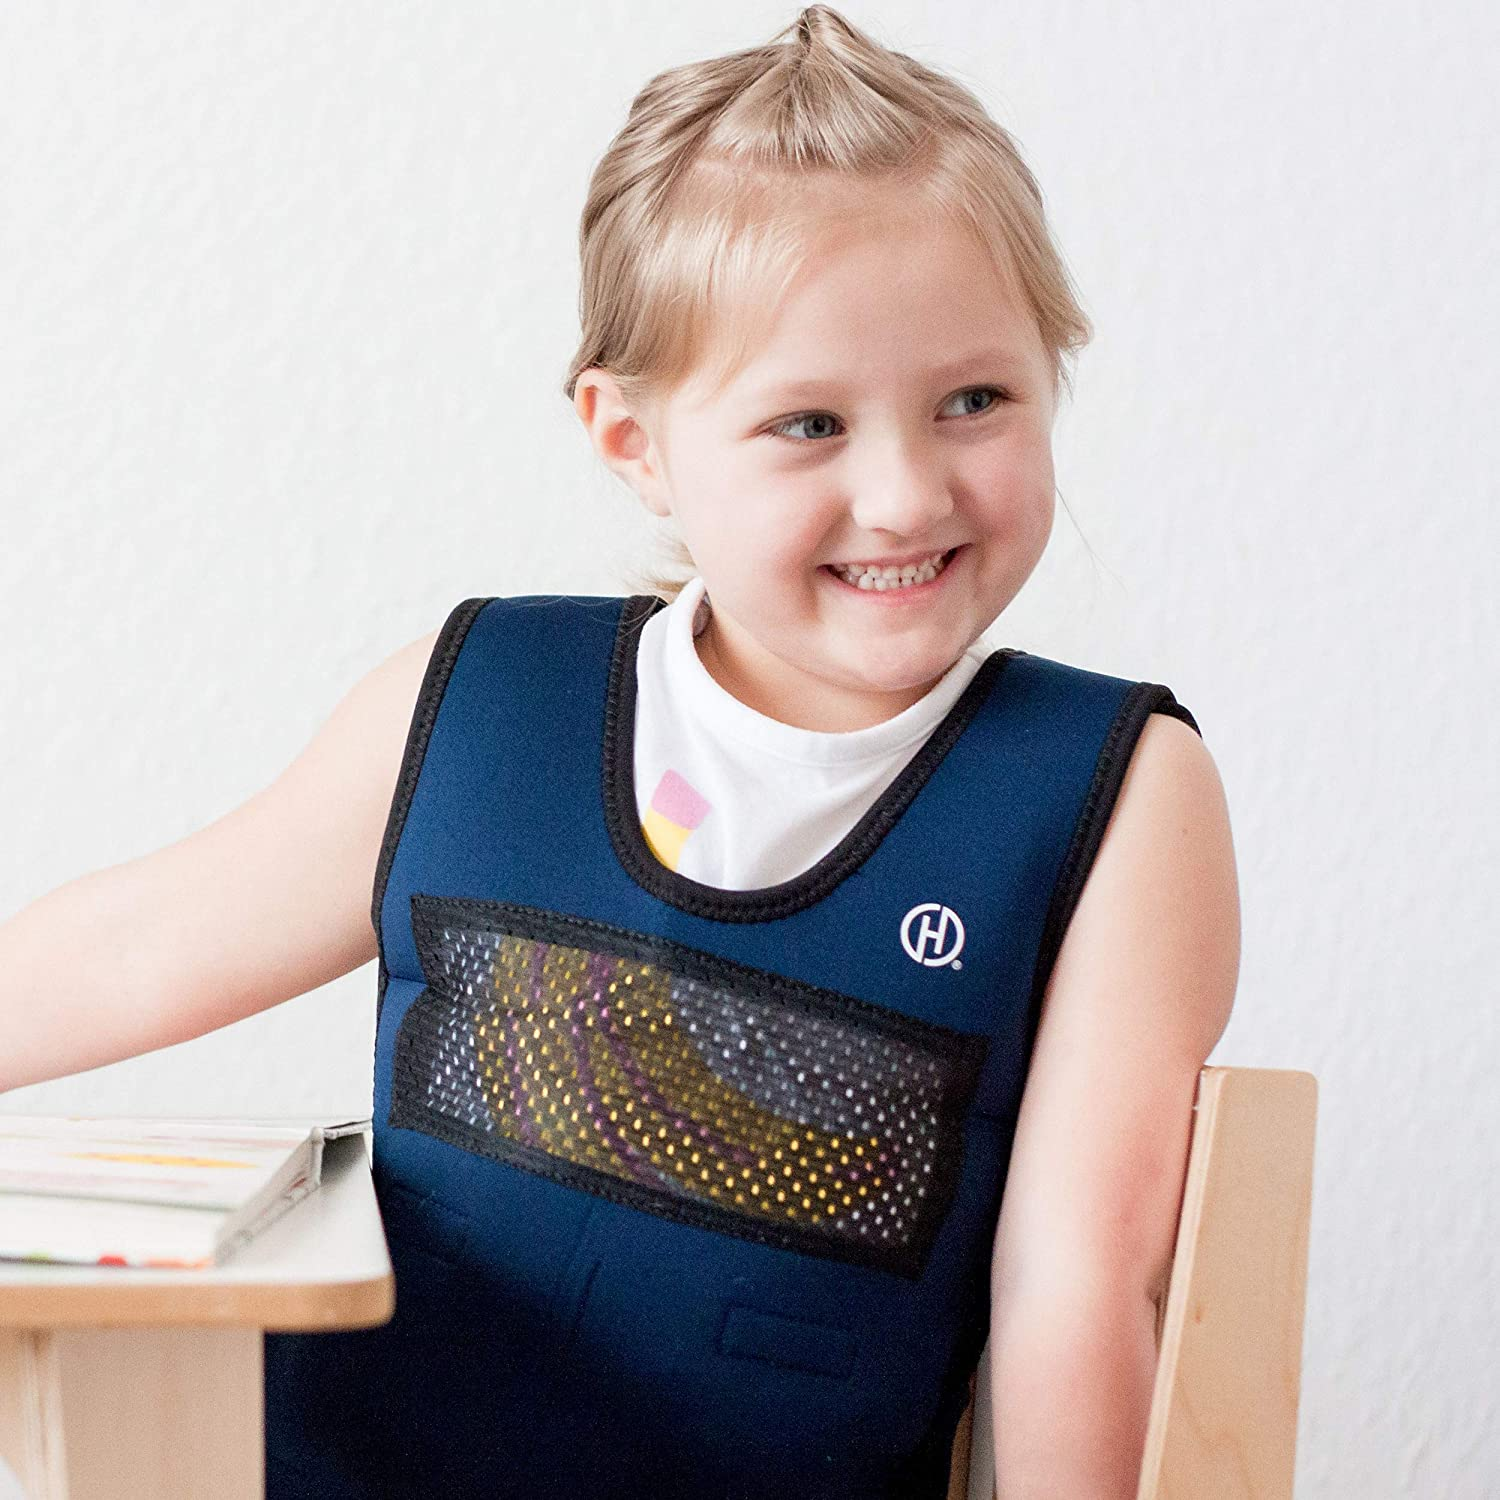 Weighted Compression Vest for Children (Ages 5 to 9) by Harkla - Helps with Autism, ADHD, Mood, Sensory Overload - Weighted Vest for Kids with Sensory Issues